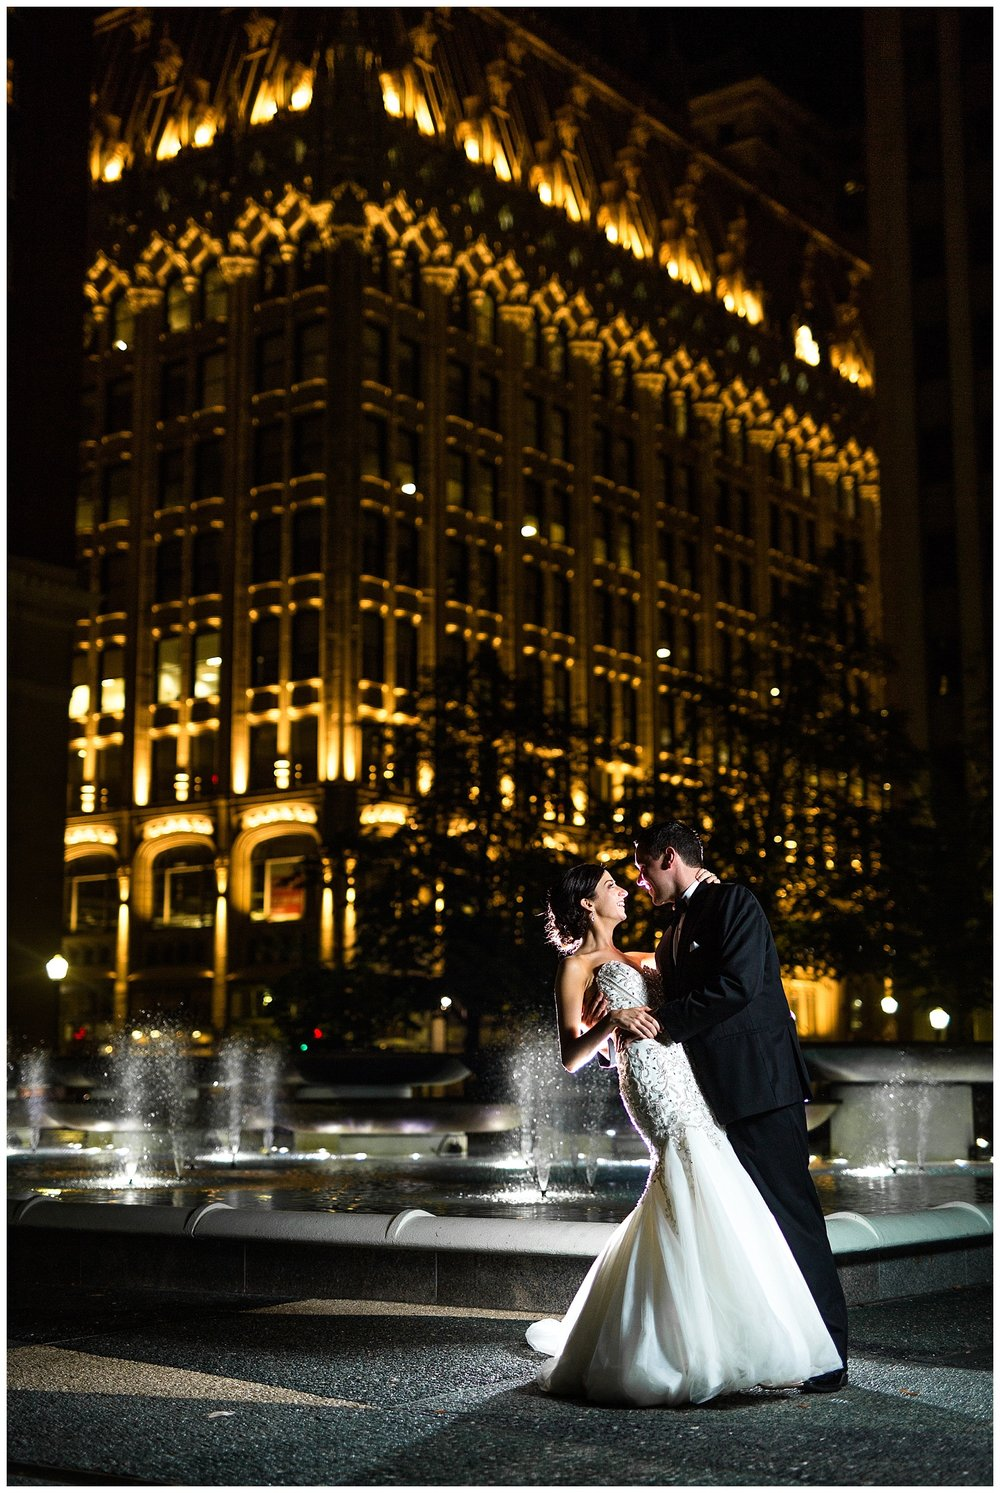 Downtown Pittsburgh Wedding | Embassy Suites Pittsburgh | Black Tie Pittsburgh Wedding | www.redoakweddings.com